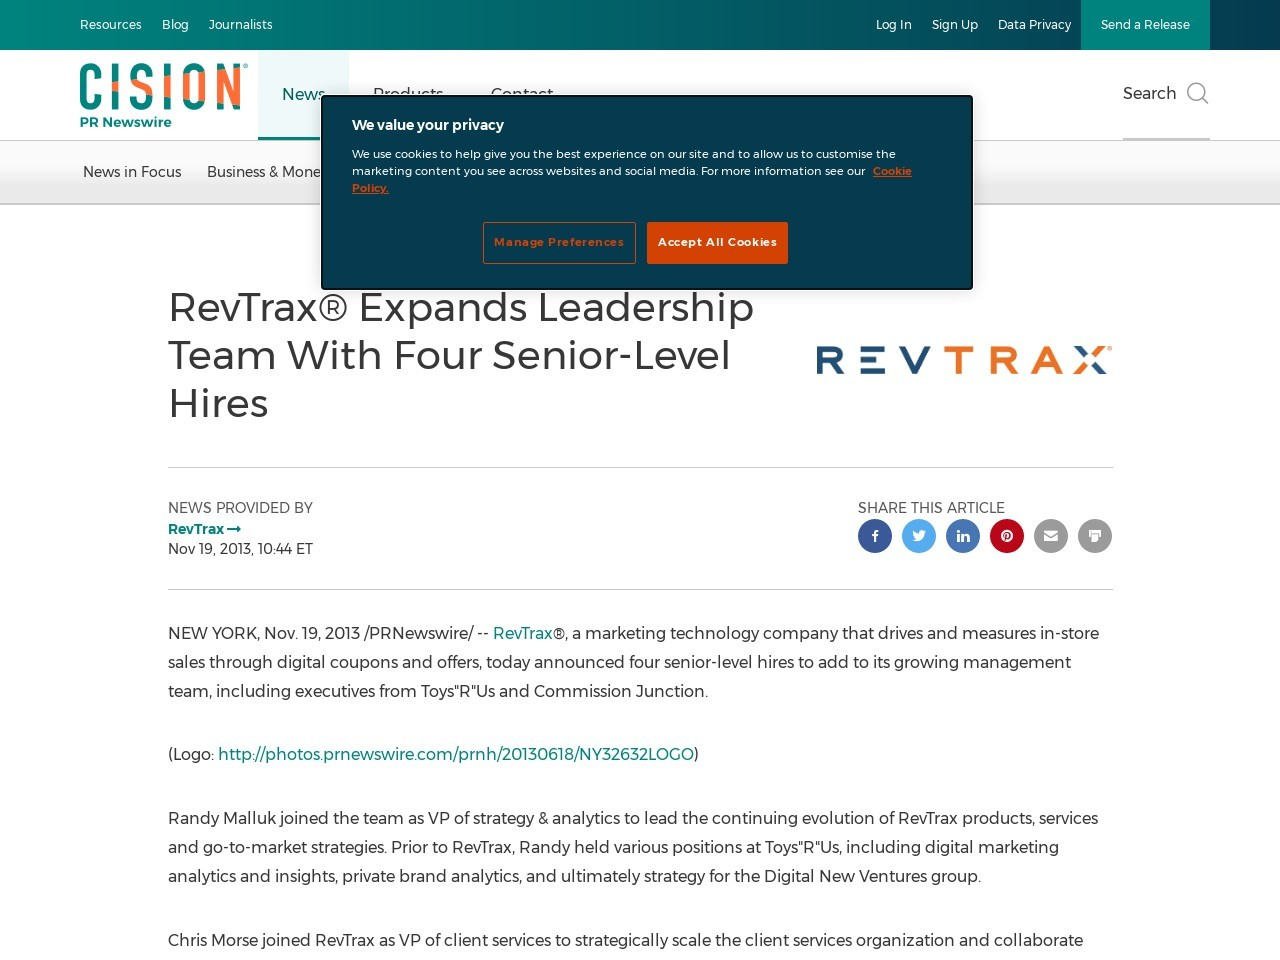 RevTrax® Expands Leadership Team With Four Senior-Level Hires